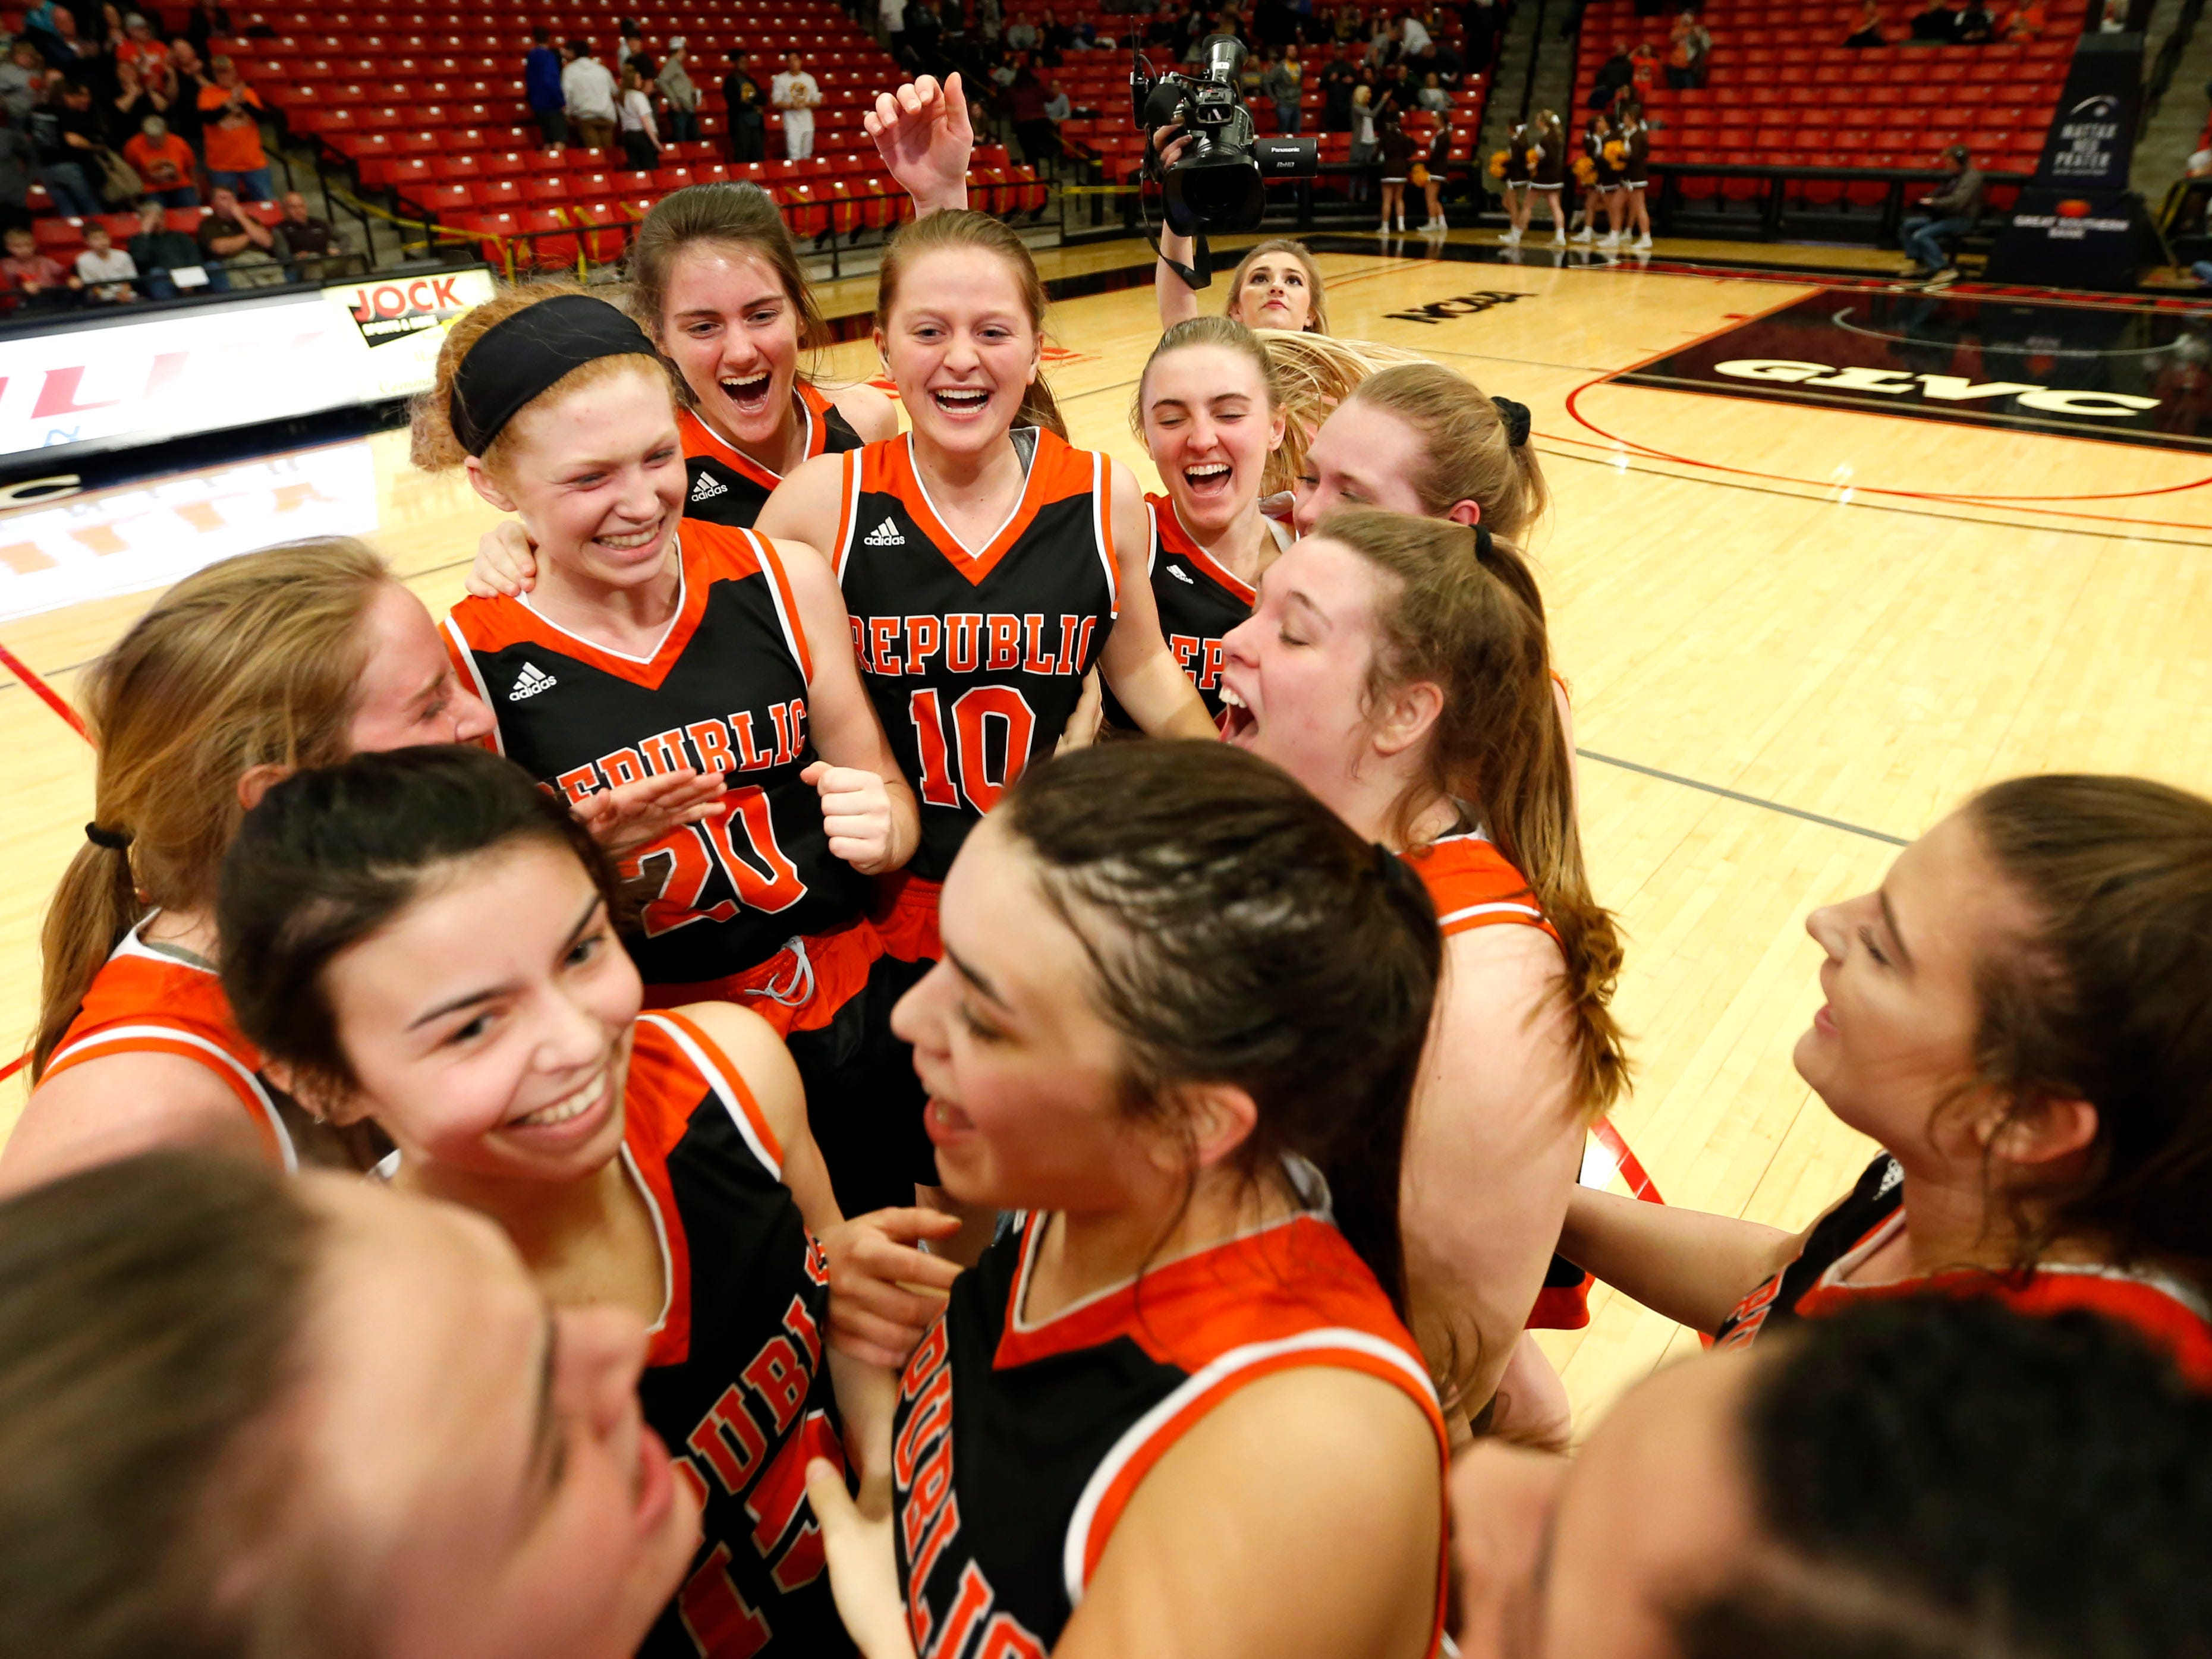 The Republic Lady Tigers celebrate after beating the Kickapoo Lady Chiefs during class 5 sectionals at the O'Reilly Family Event Center on Wednesday, March 6, 2019